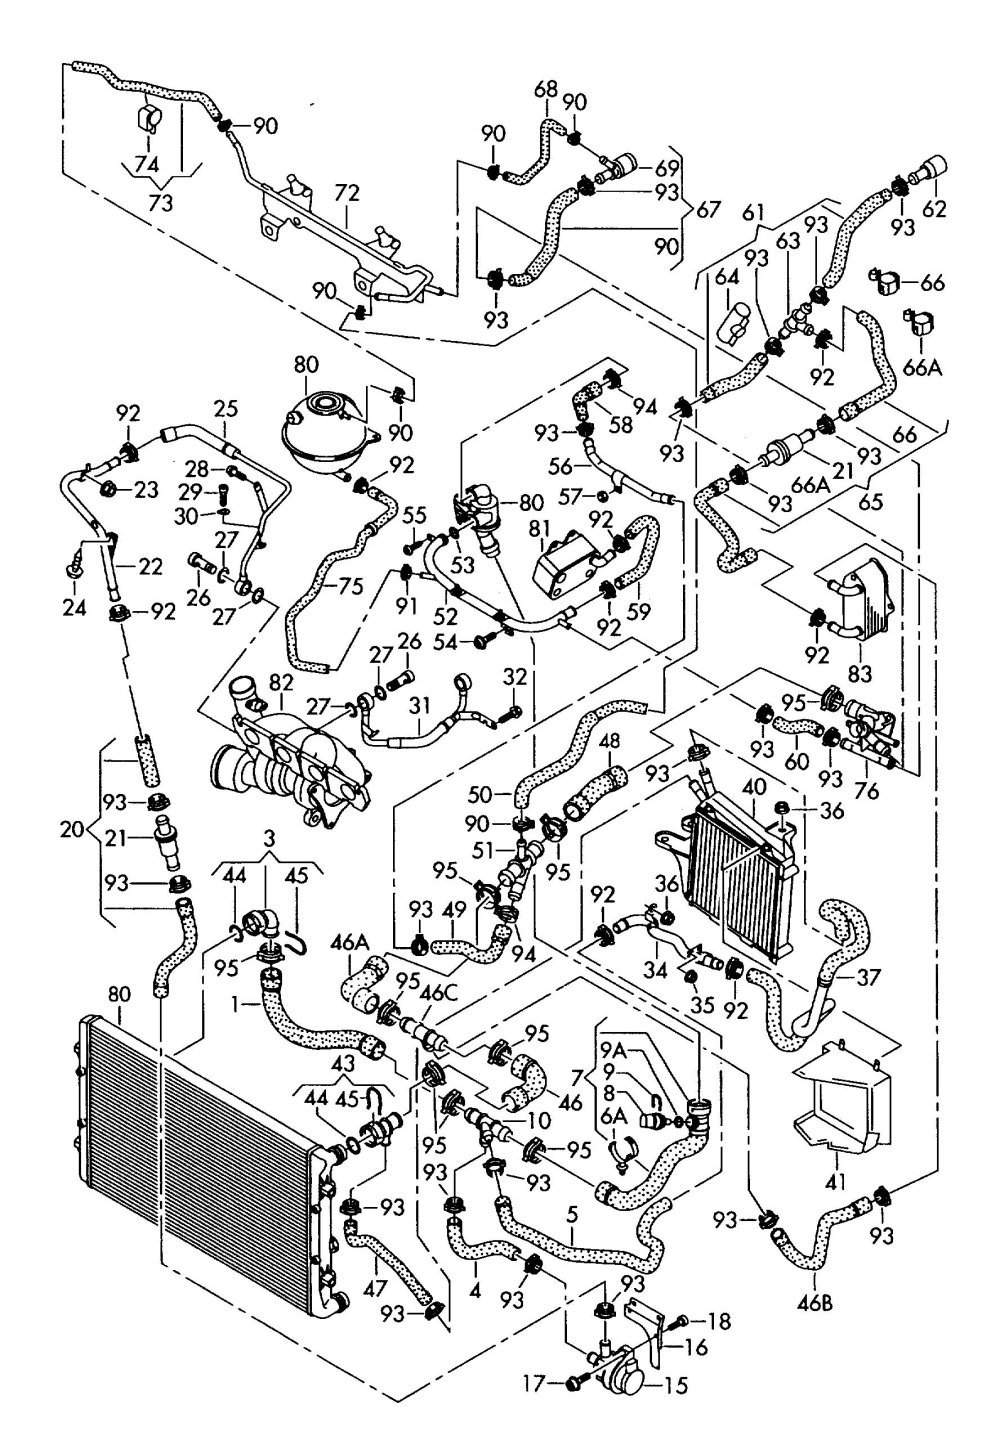 medium resolution of vw 1 8t engine parts diagram wiring diagrams for 2000 vw beetle 1 8 turbo engine diagram